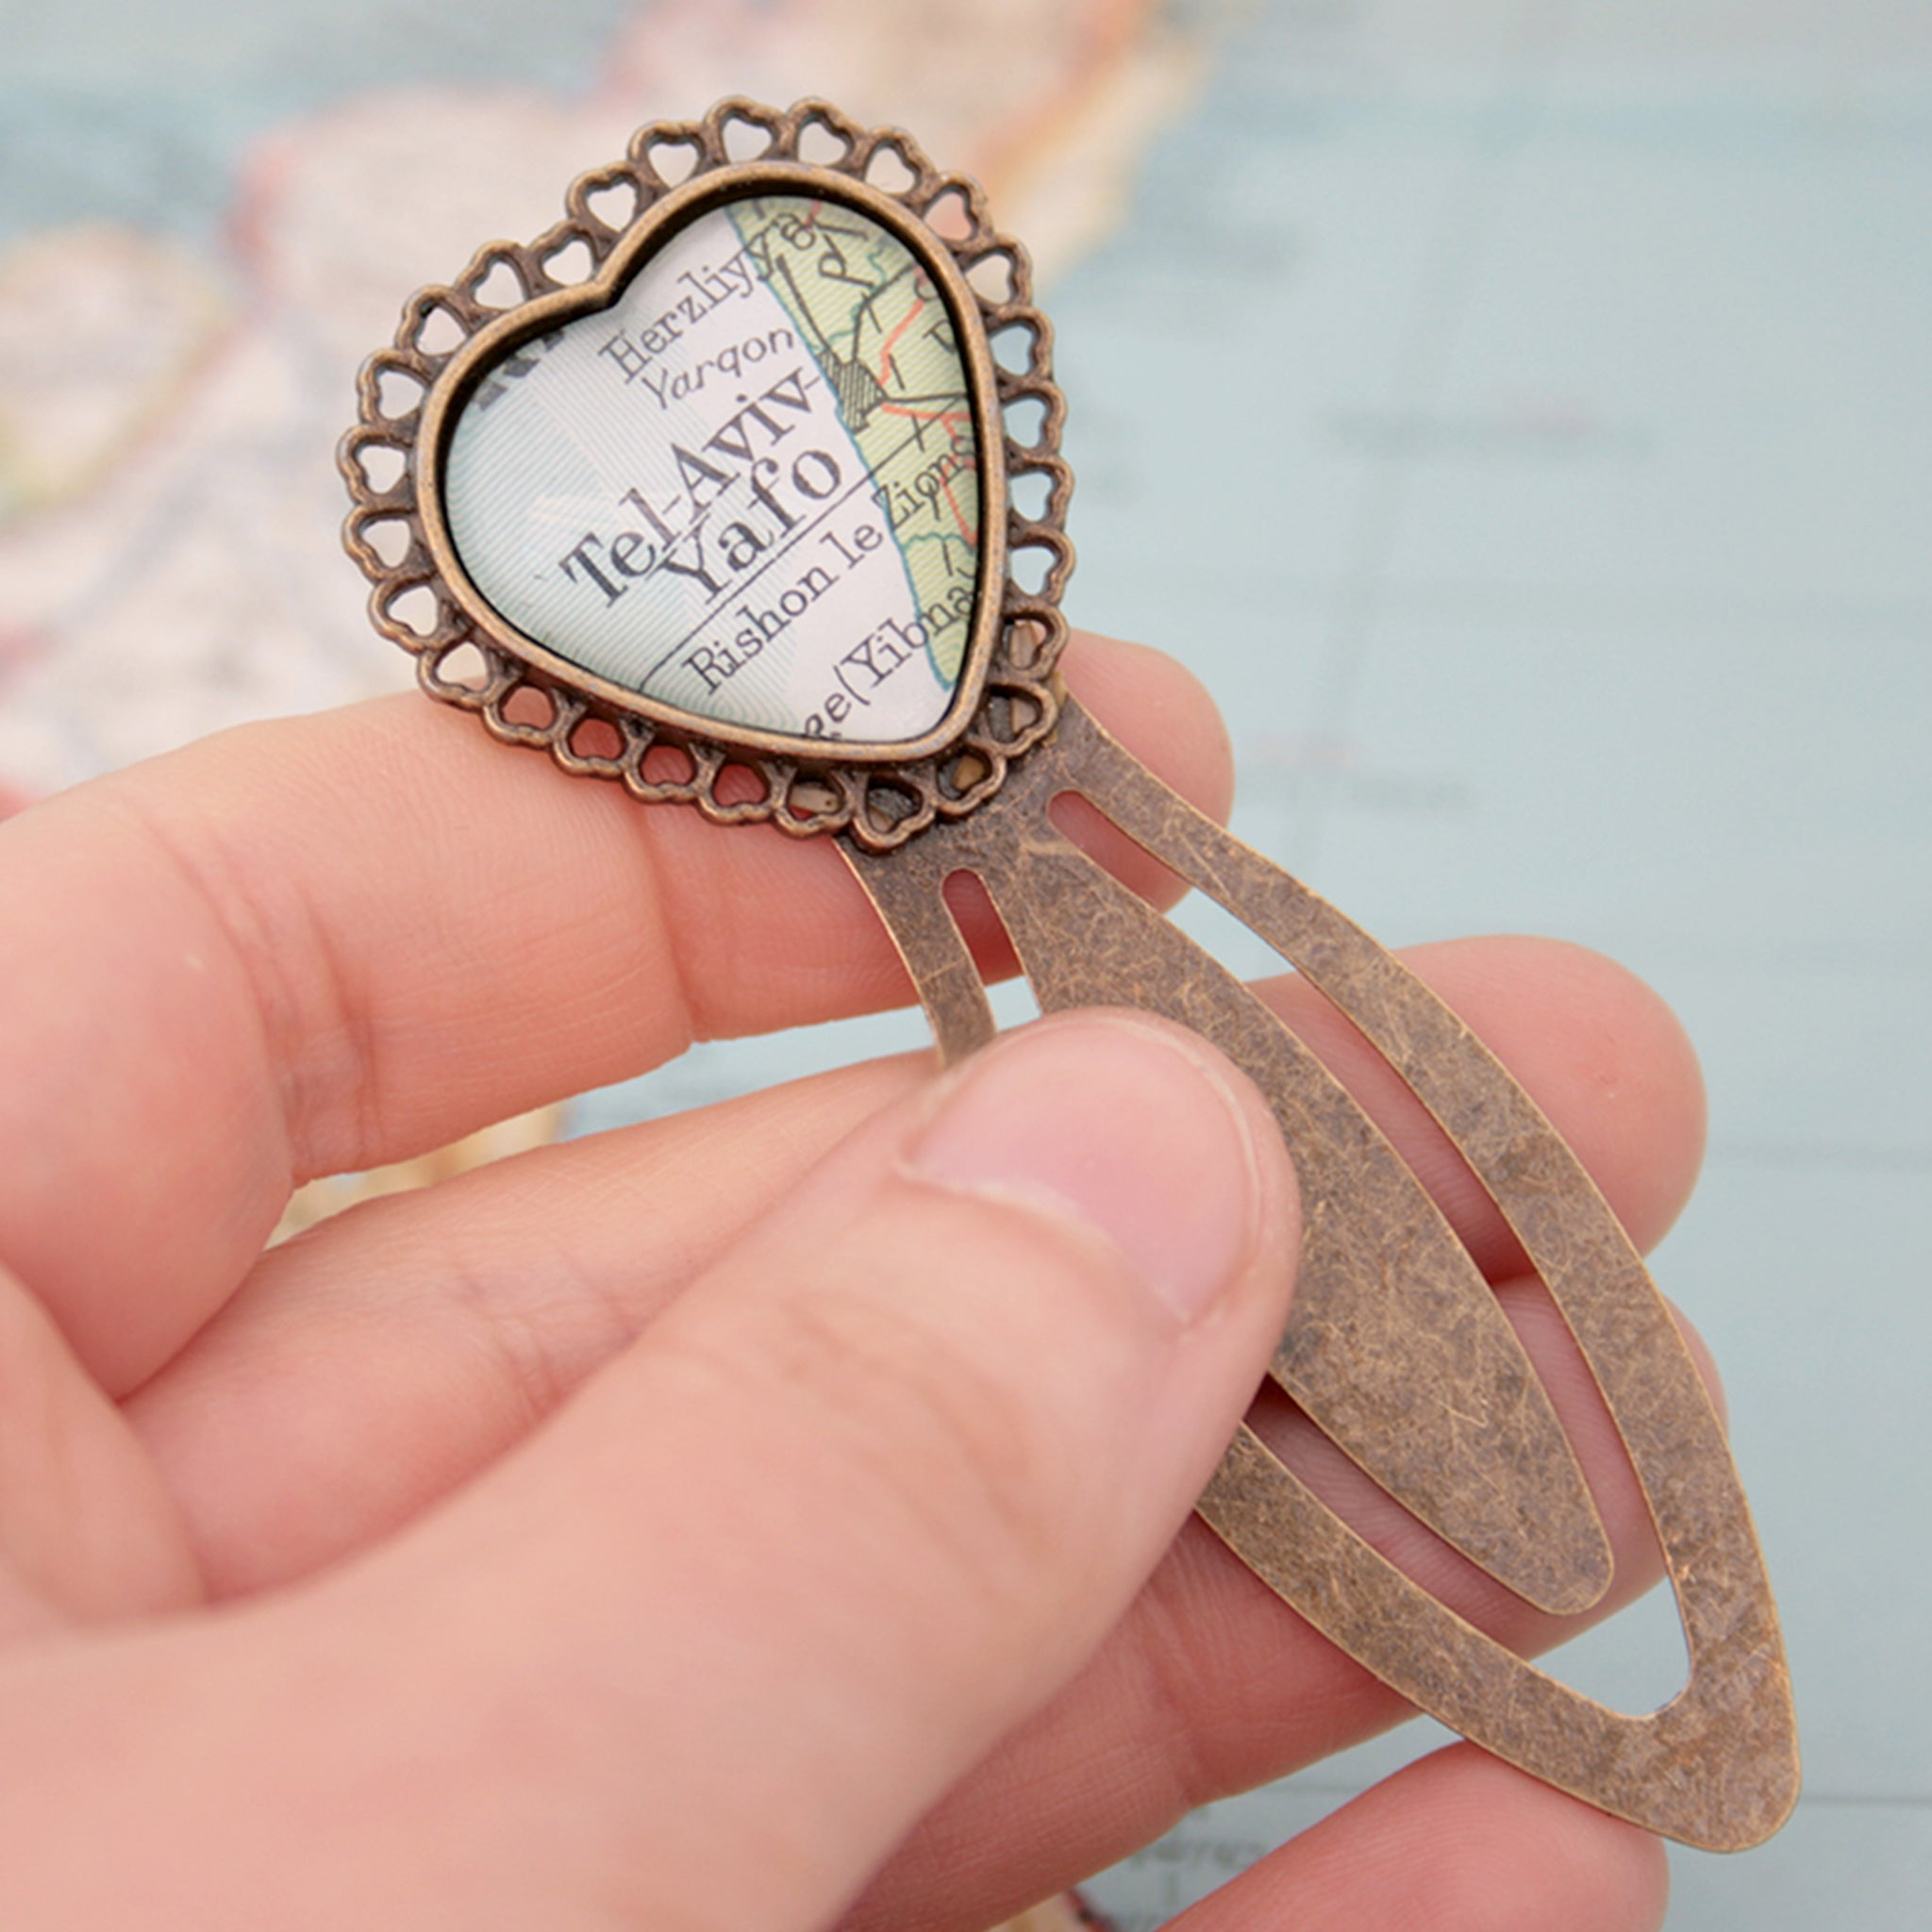 hold in hand metal bookmark in heart shape personalised with map of Tel Aviv